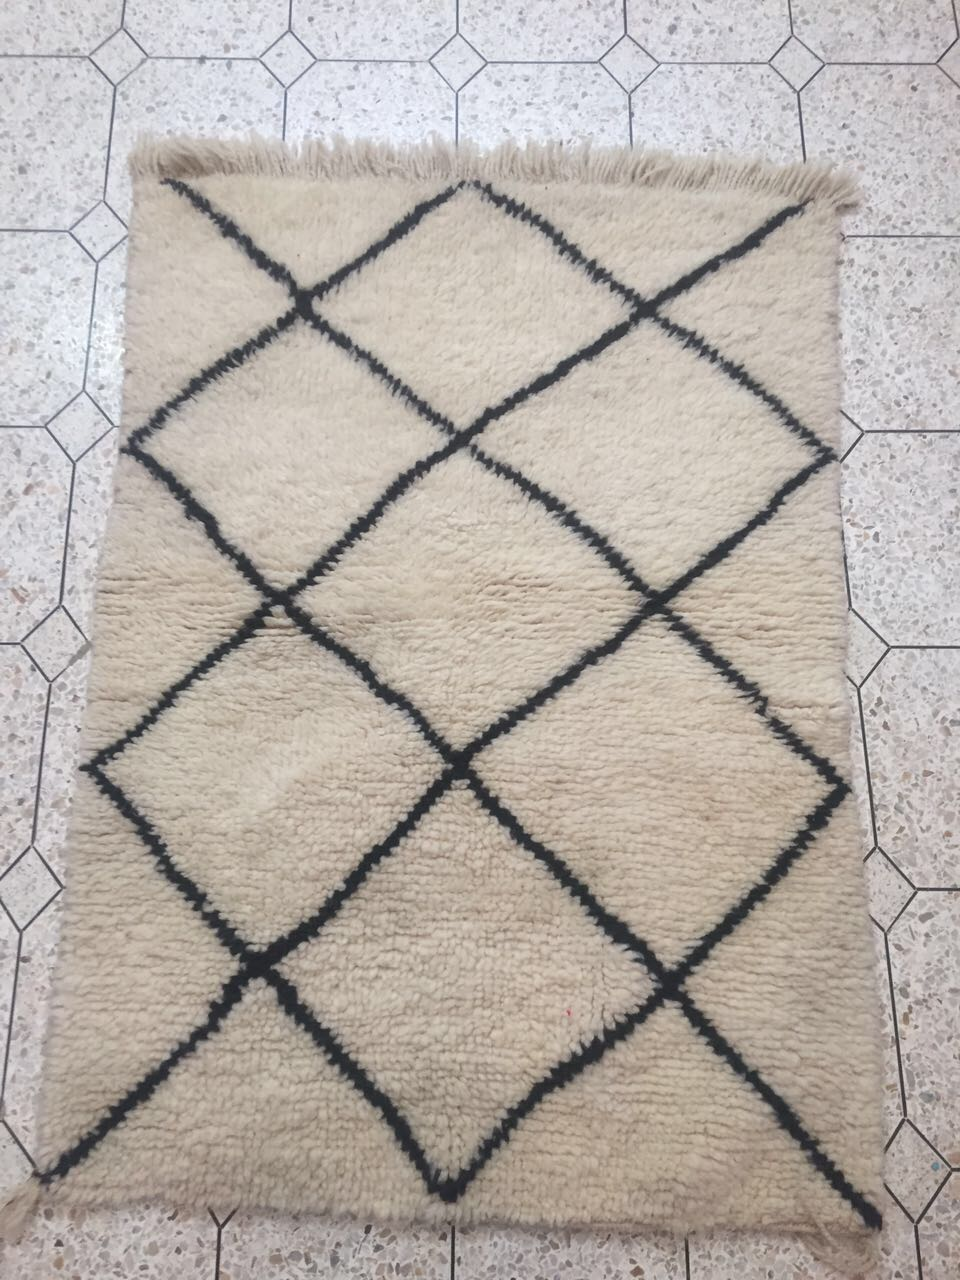 Small Beni Ouarain carpet